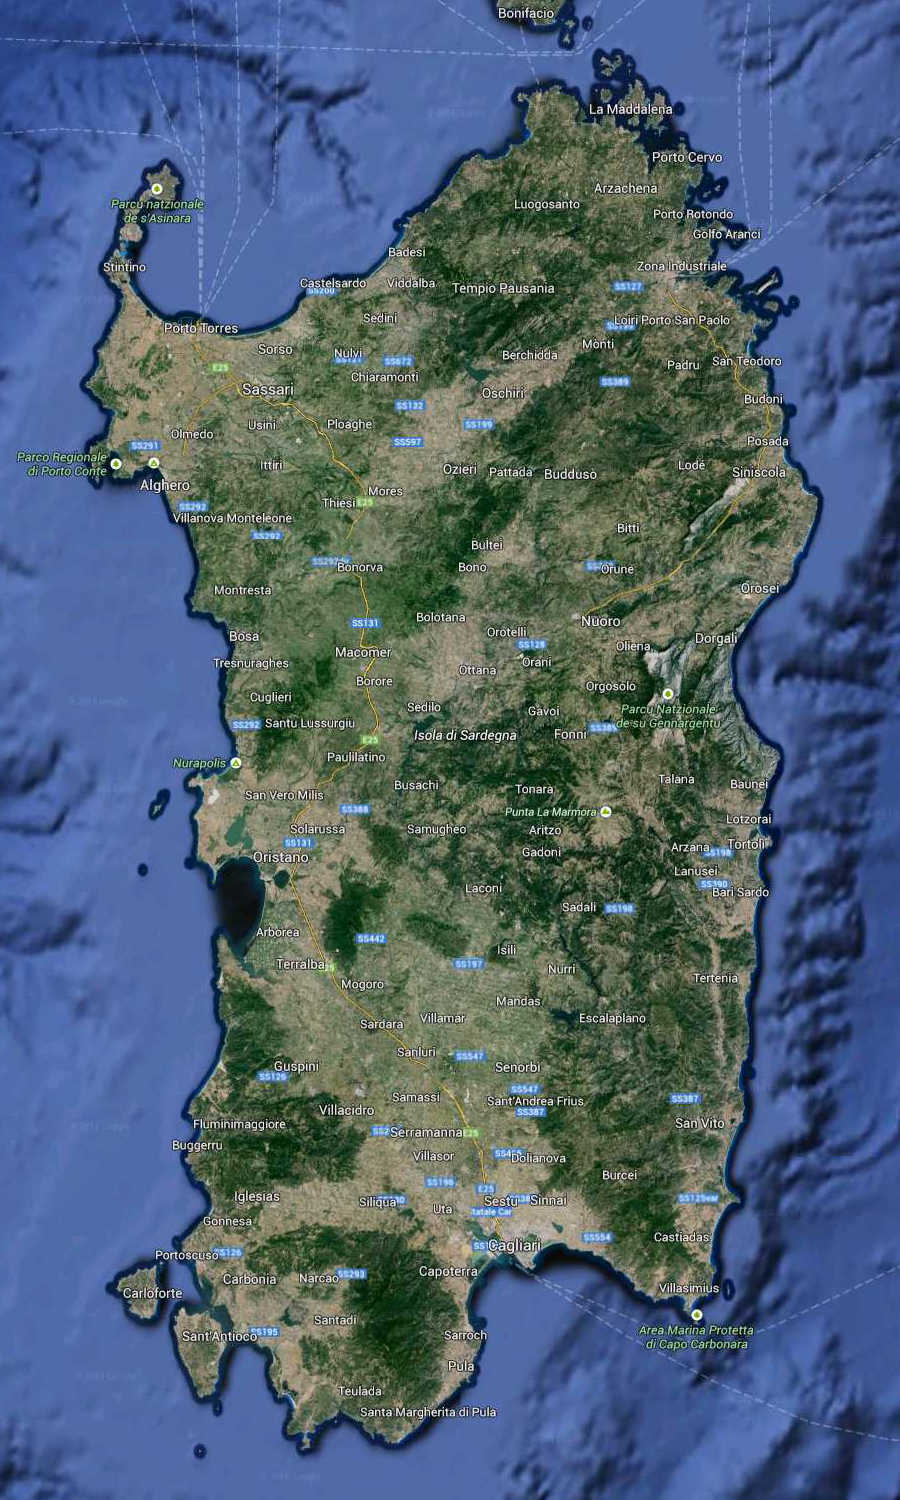 Sardinia Regione South Italy Map (Kindly in use by Google Maps)